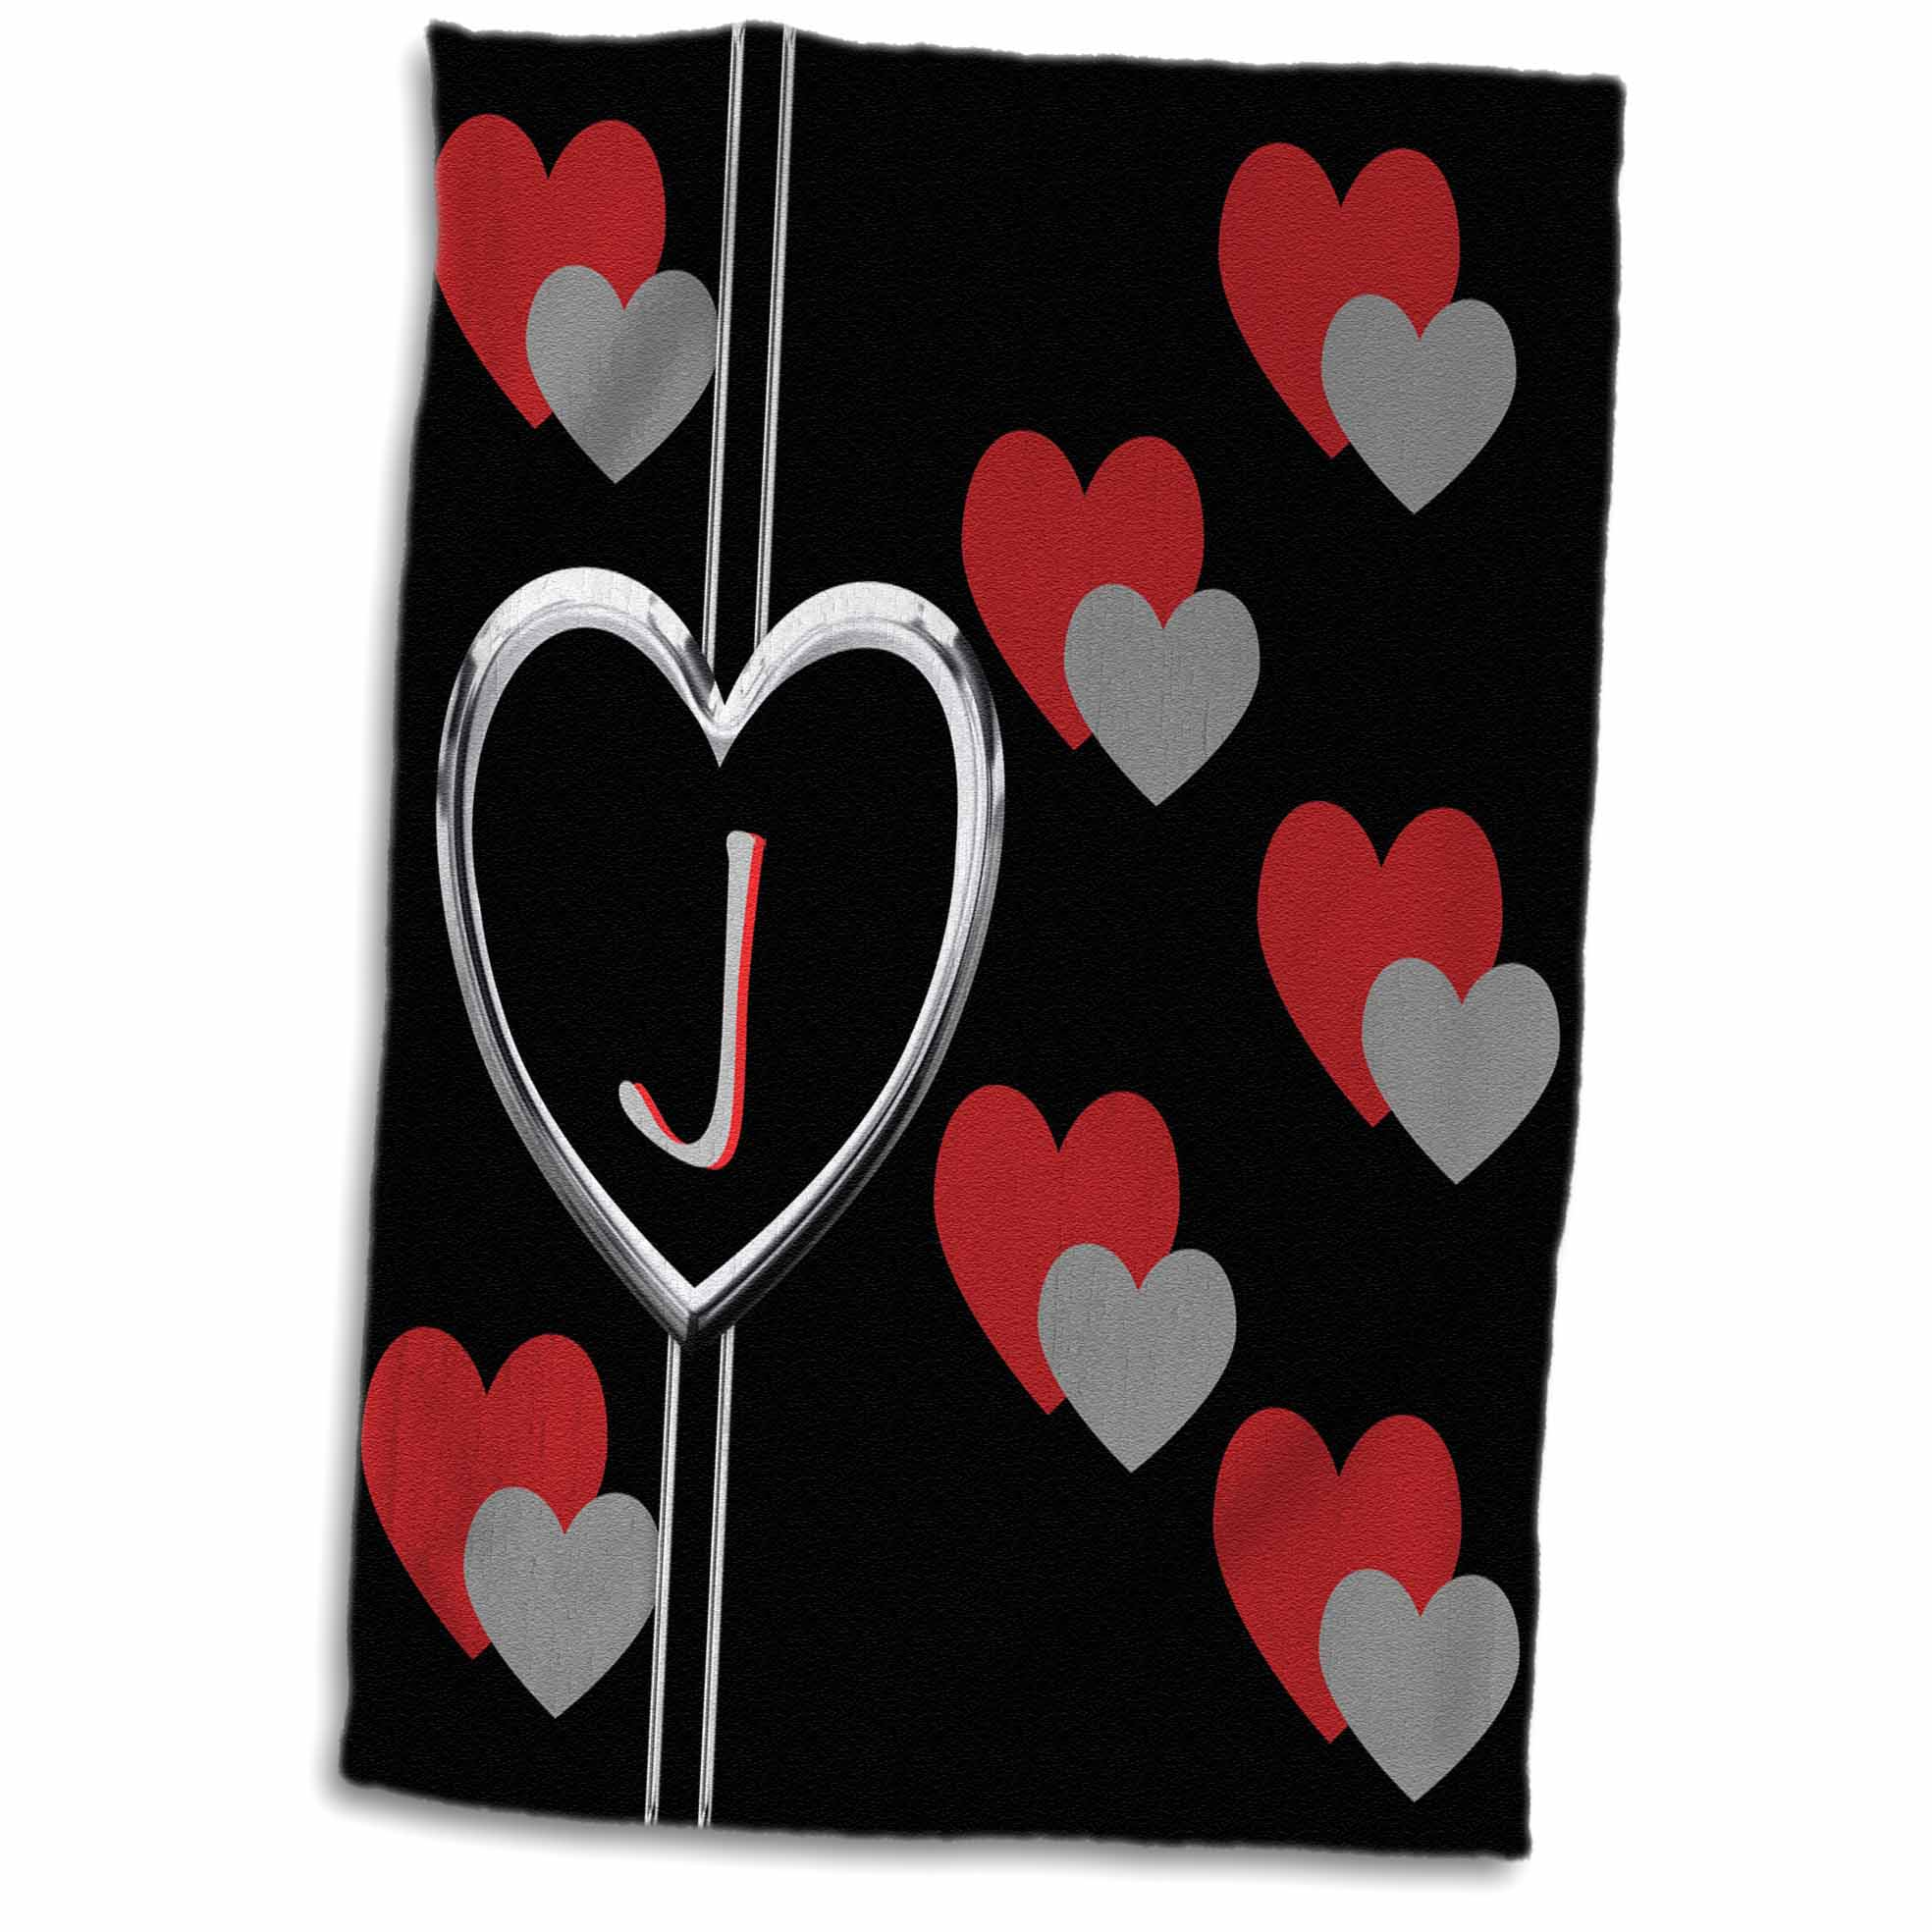 3dRose Modern Geometric Black Red Grey Hearts Pattern Monogram Letter J - Towel, 15 by 22-inch